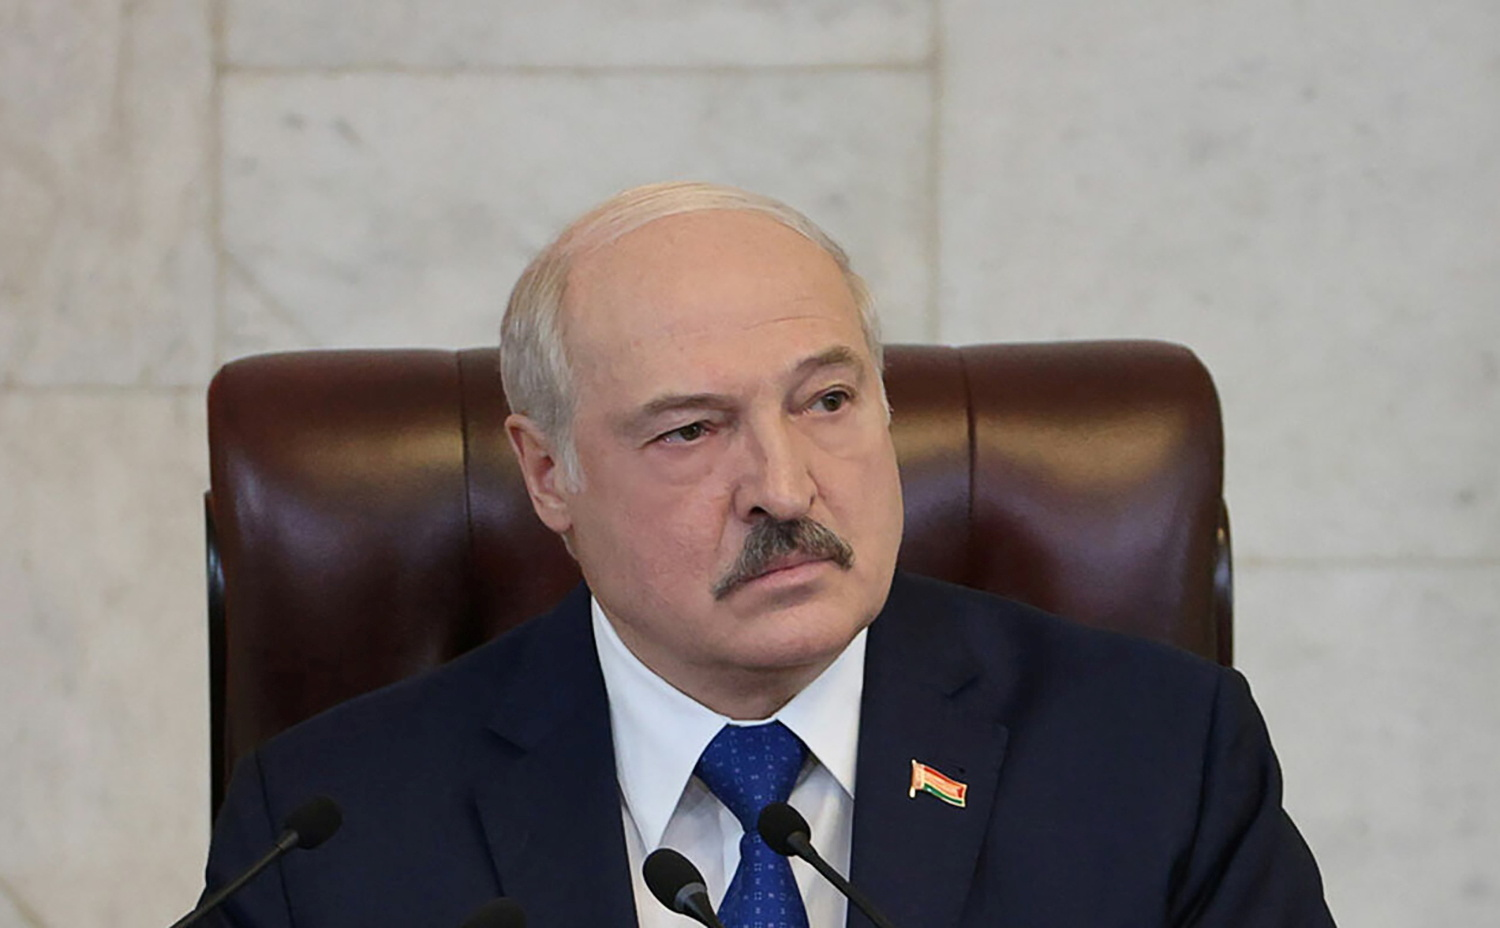 Belarusian President Alexander Lukashenko delivers a speech during a meeting with parliamentarians, members of the Constitutional Commission and representatives of public administration bodies, in Minsk, Belarus May 26, 2021. Press Service of the President of the Republic of Belarus/Handout via REUTERS